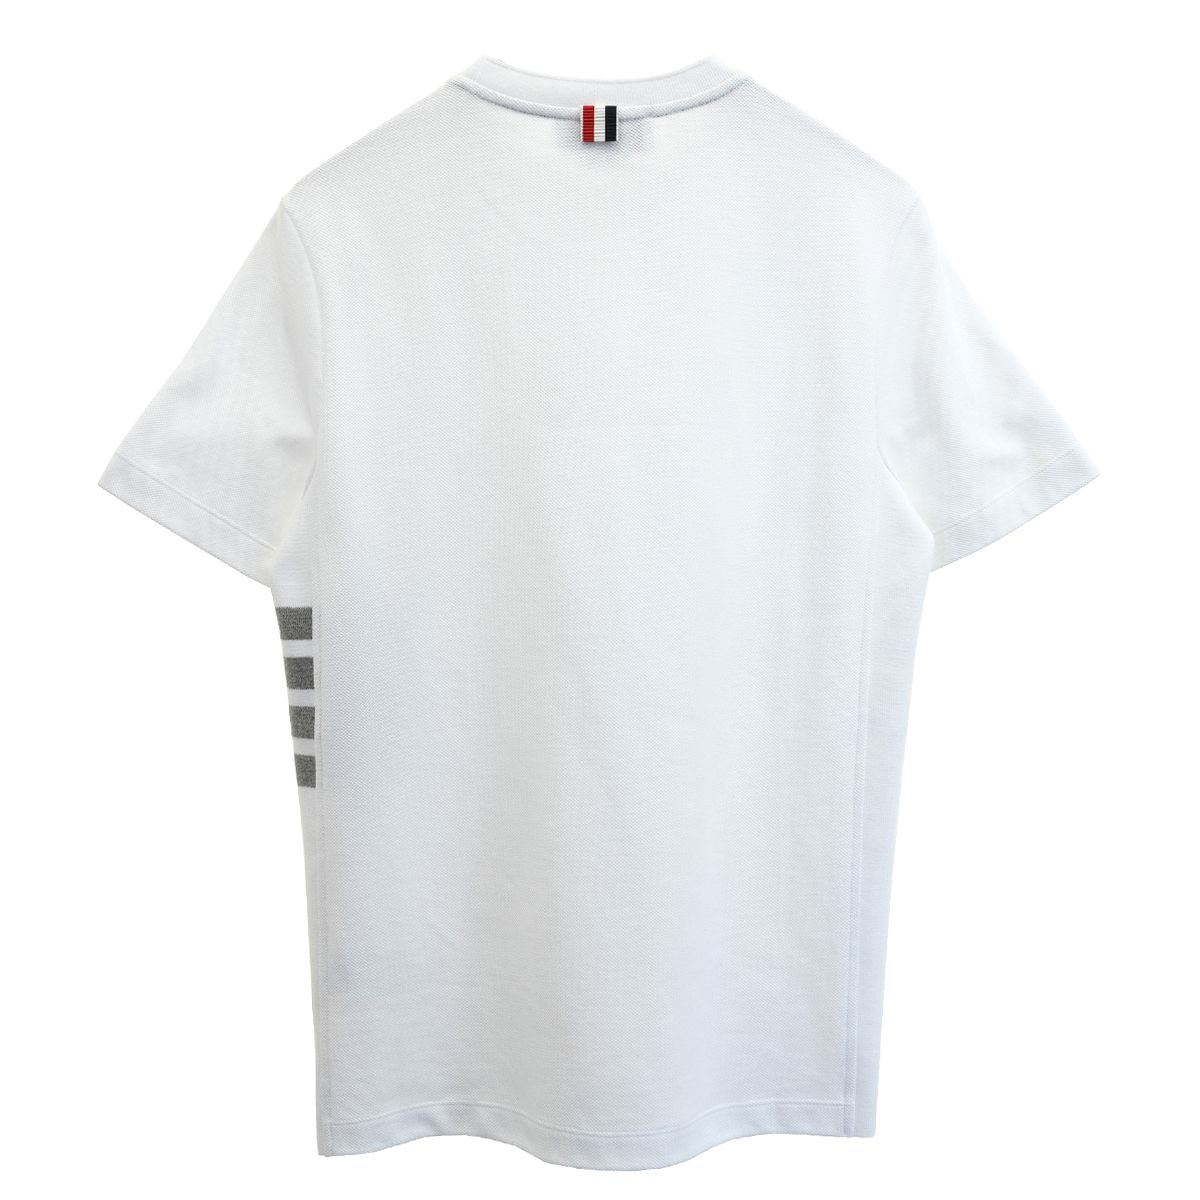 [お問い合わせ商品] THOM BROWNE. SHORT SLEEVE RIB CUFF TEE W/ ENGINEERED 4 BAR STRIPE IN CLASSIC PIQUE / 100 : WHITE